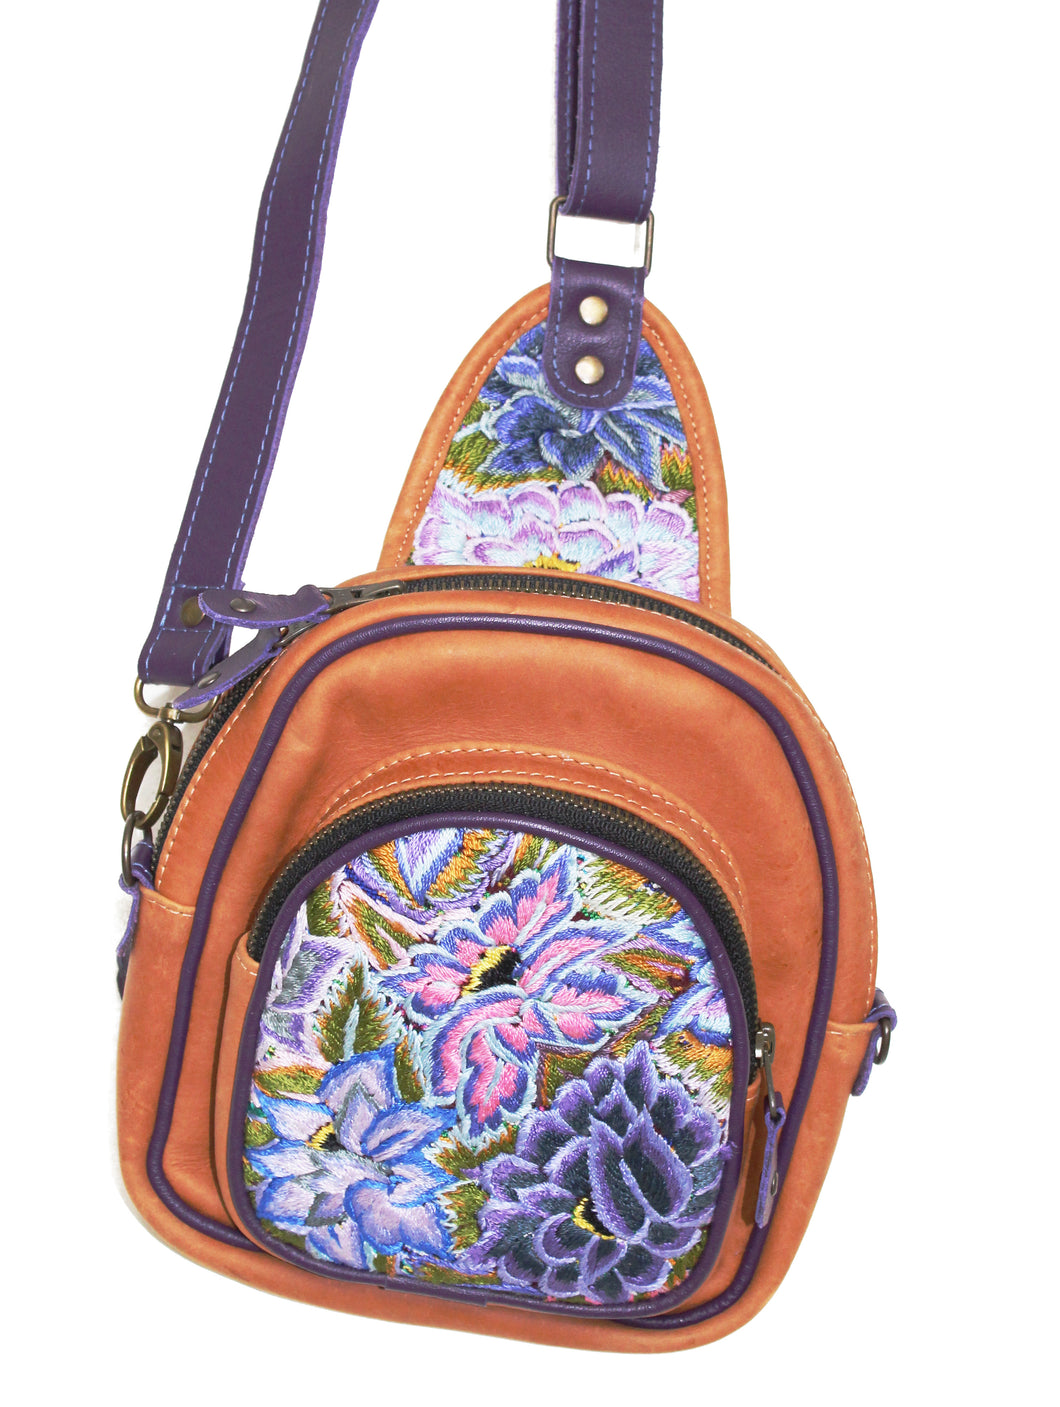 MoonLake Designs Blake Sling Over Backpack Bag in pear tan handcrafted leather with vibrant floral huipil in shades pink and purple featuring dark purple leather adjustable strap and multiple easy access pockets perfect for concerts or traveling